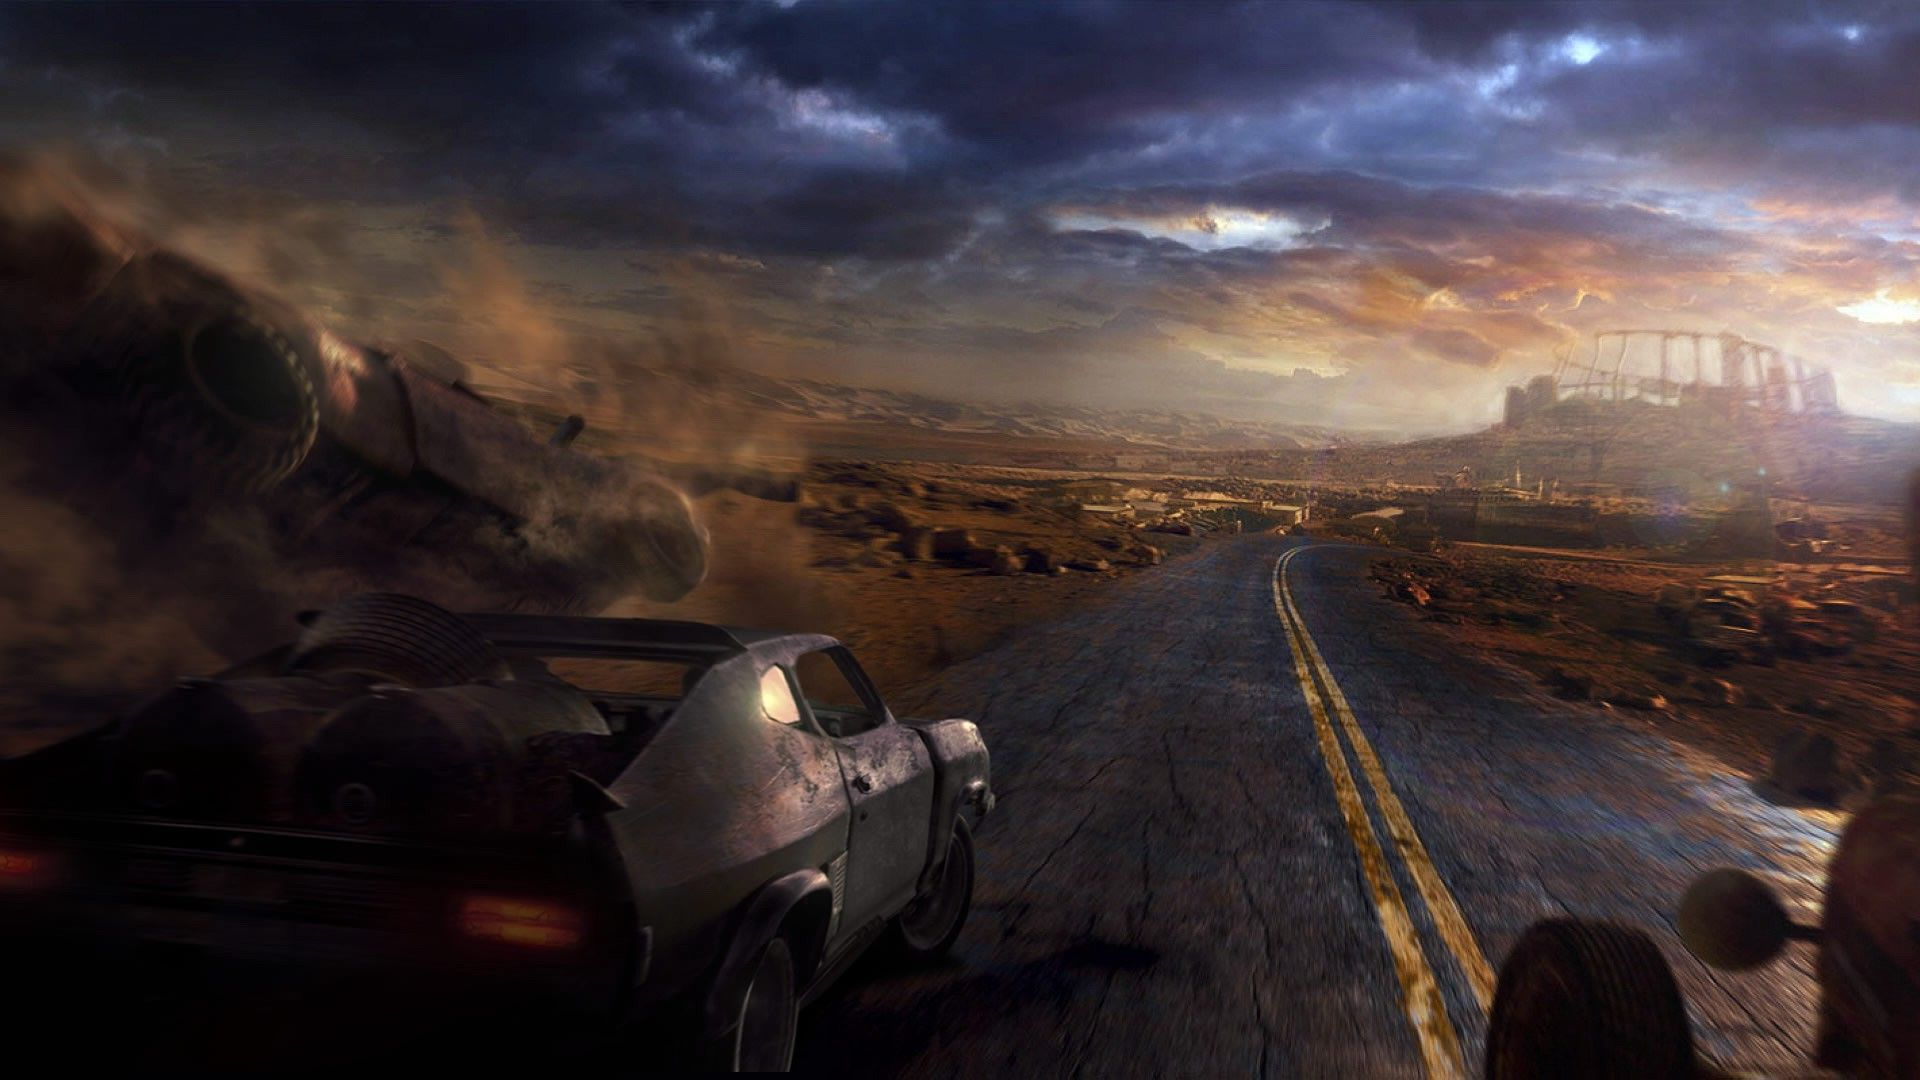 Mad Max Wallpaper 1080p - WallpaperSafari